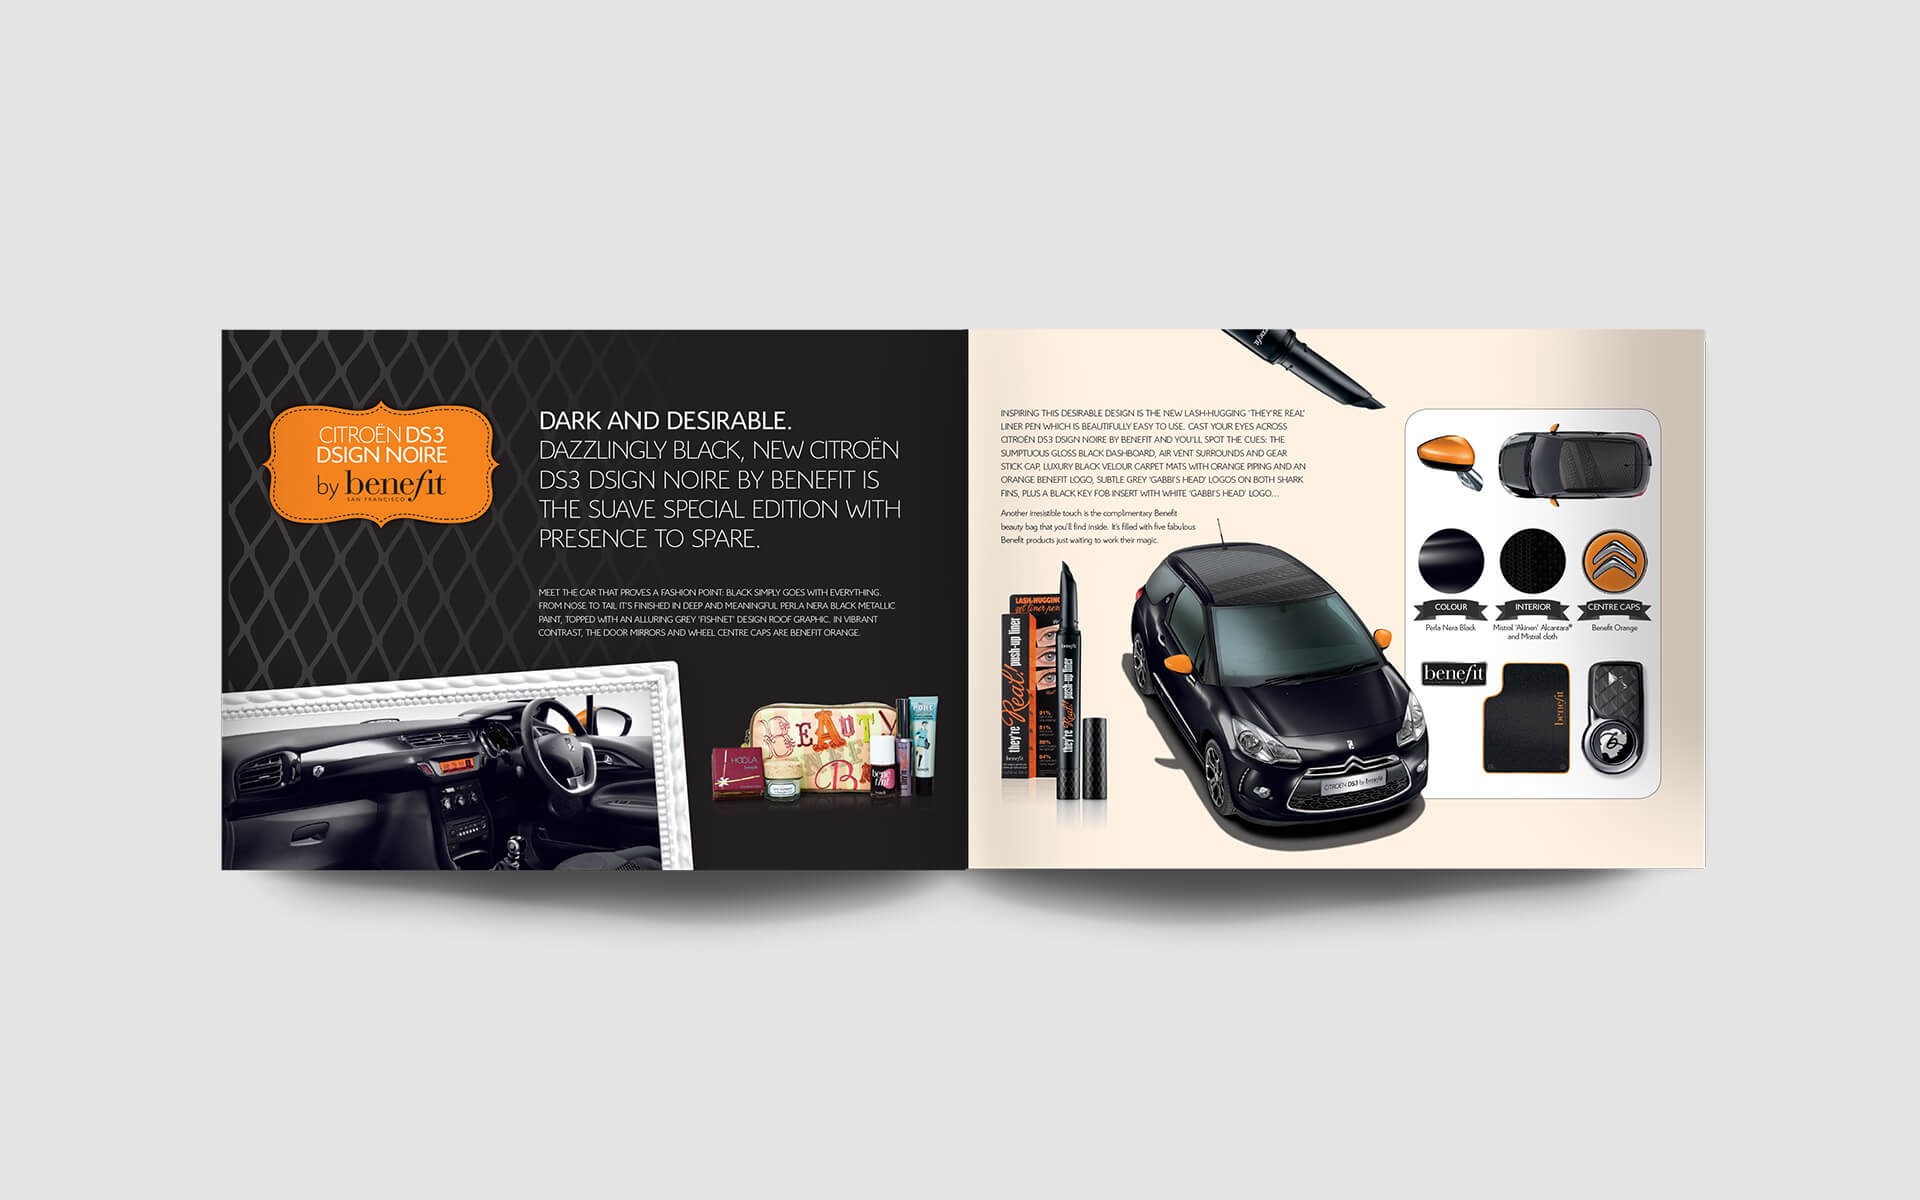 ds3 by benefit brochure spread